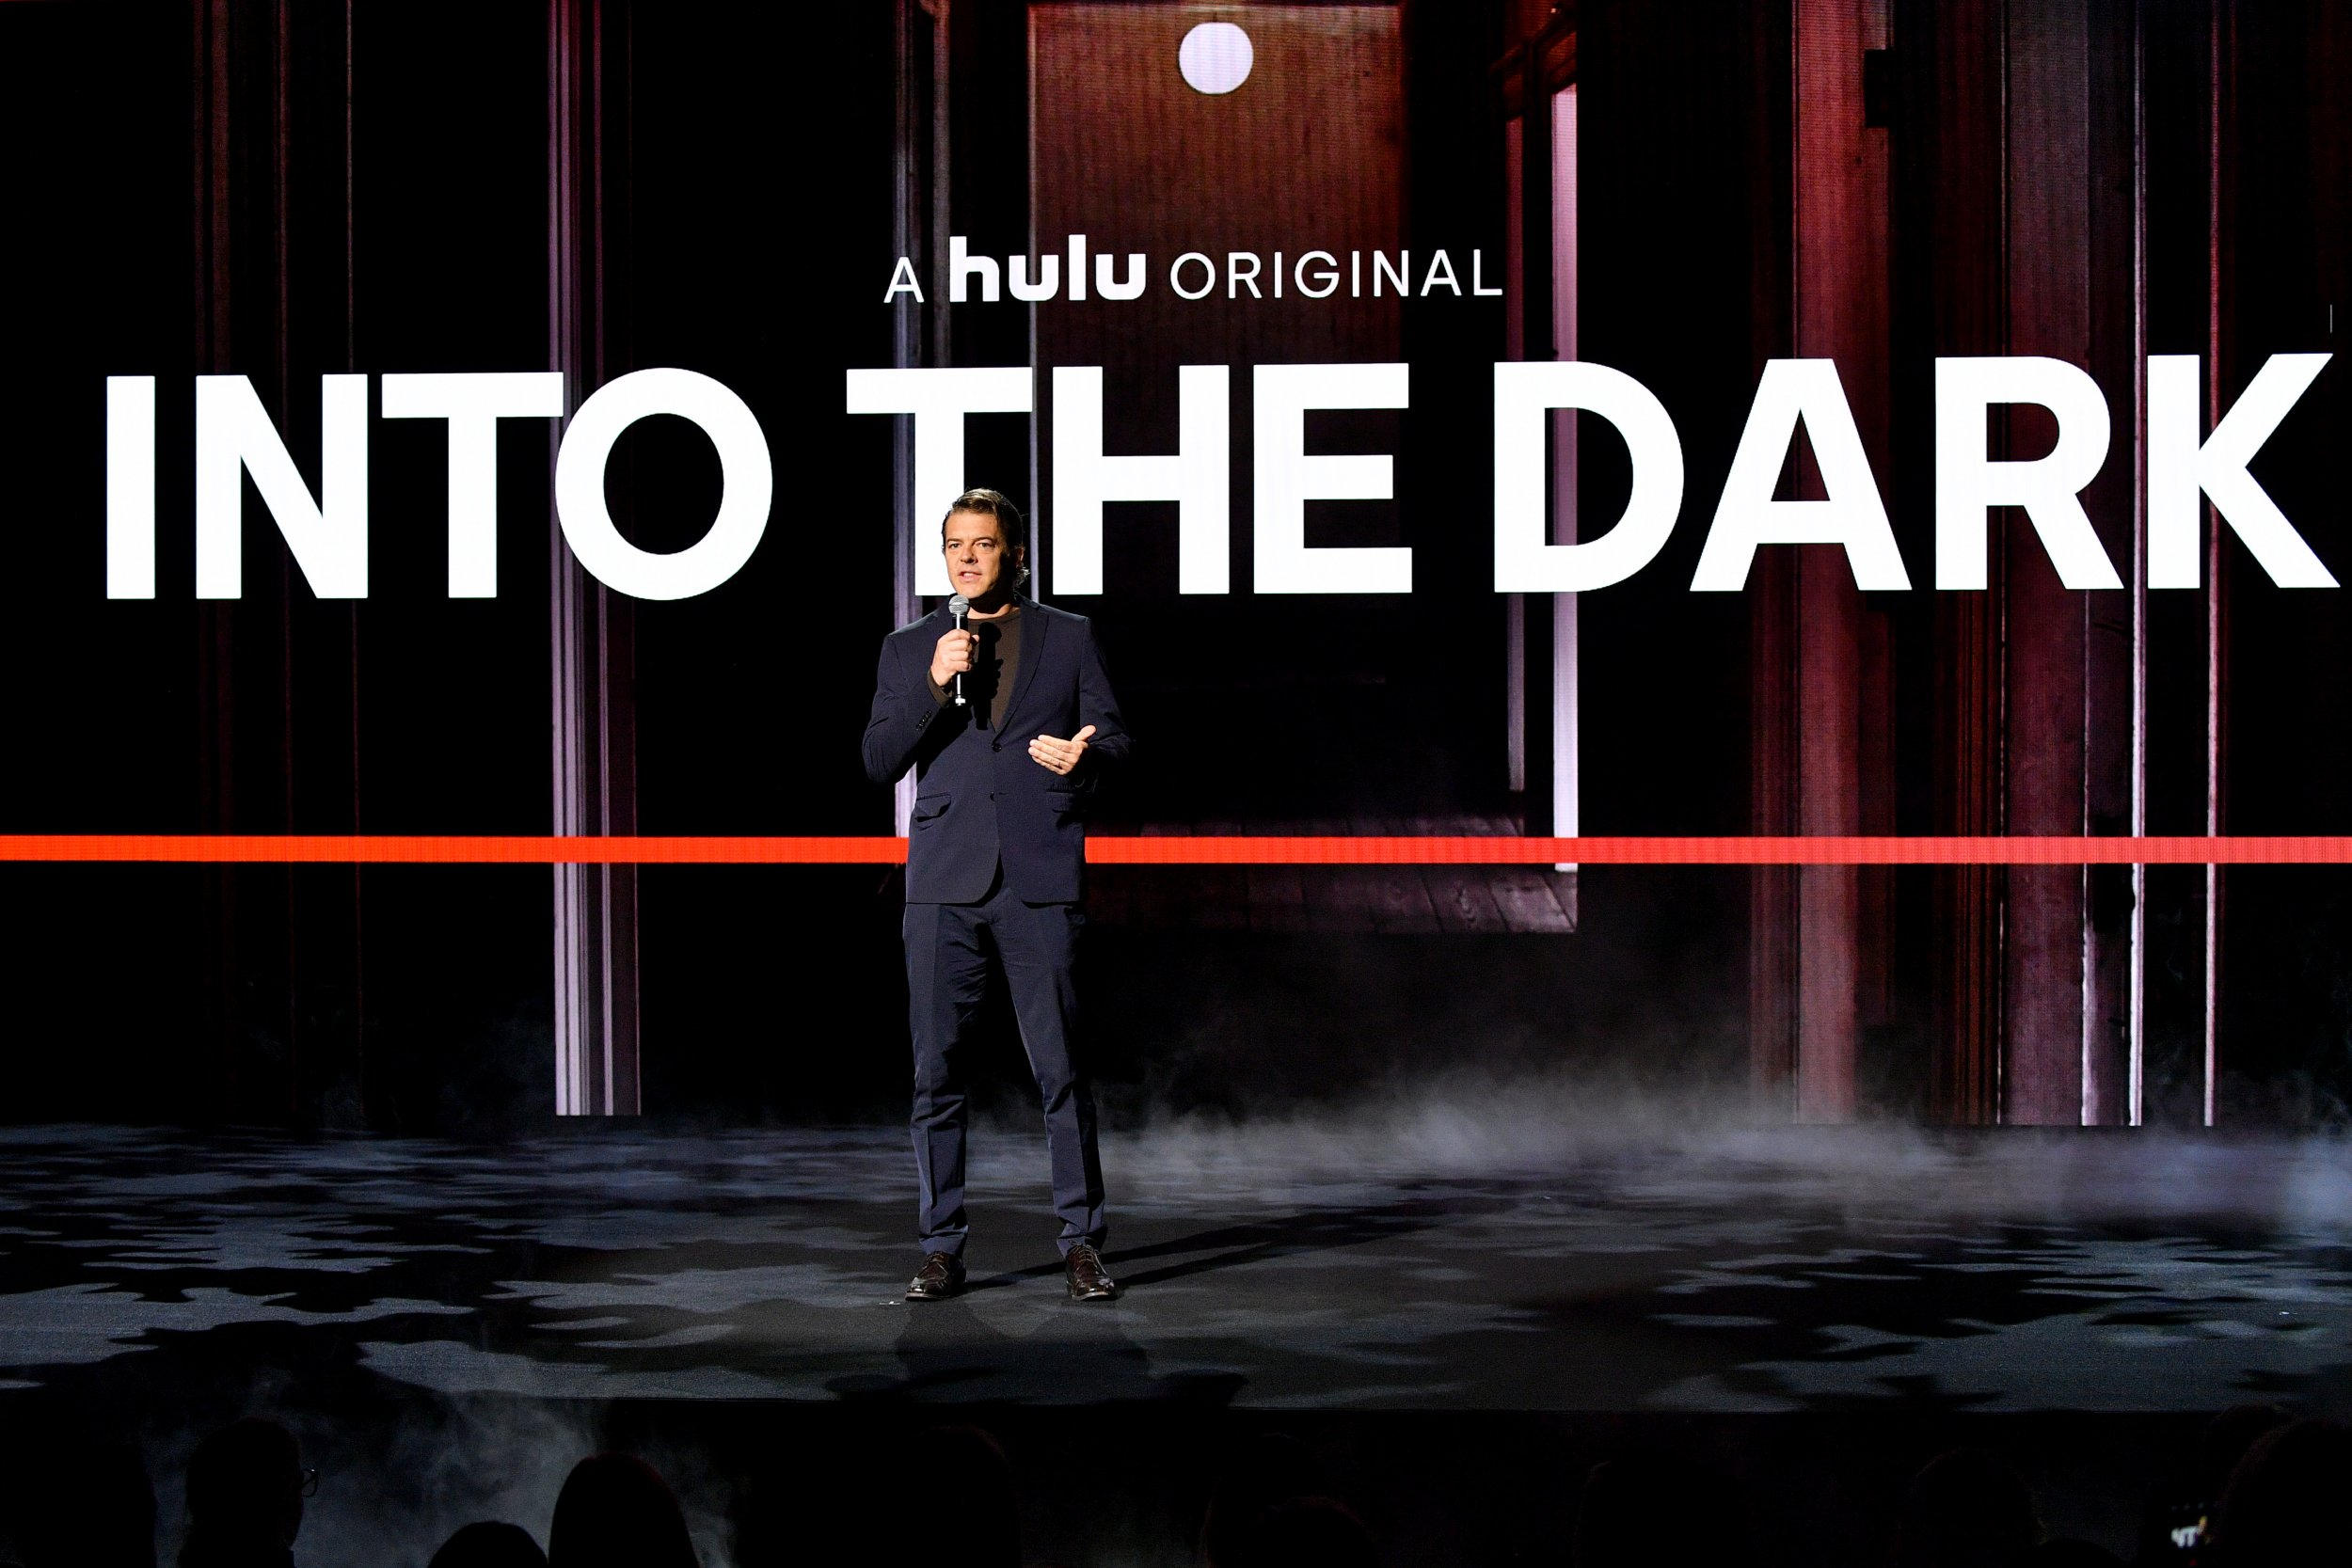 Into the Dark': Jason Blum on His New Hulu Series, 'Get Out' and the